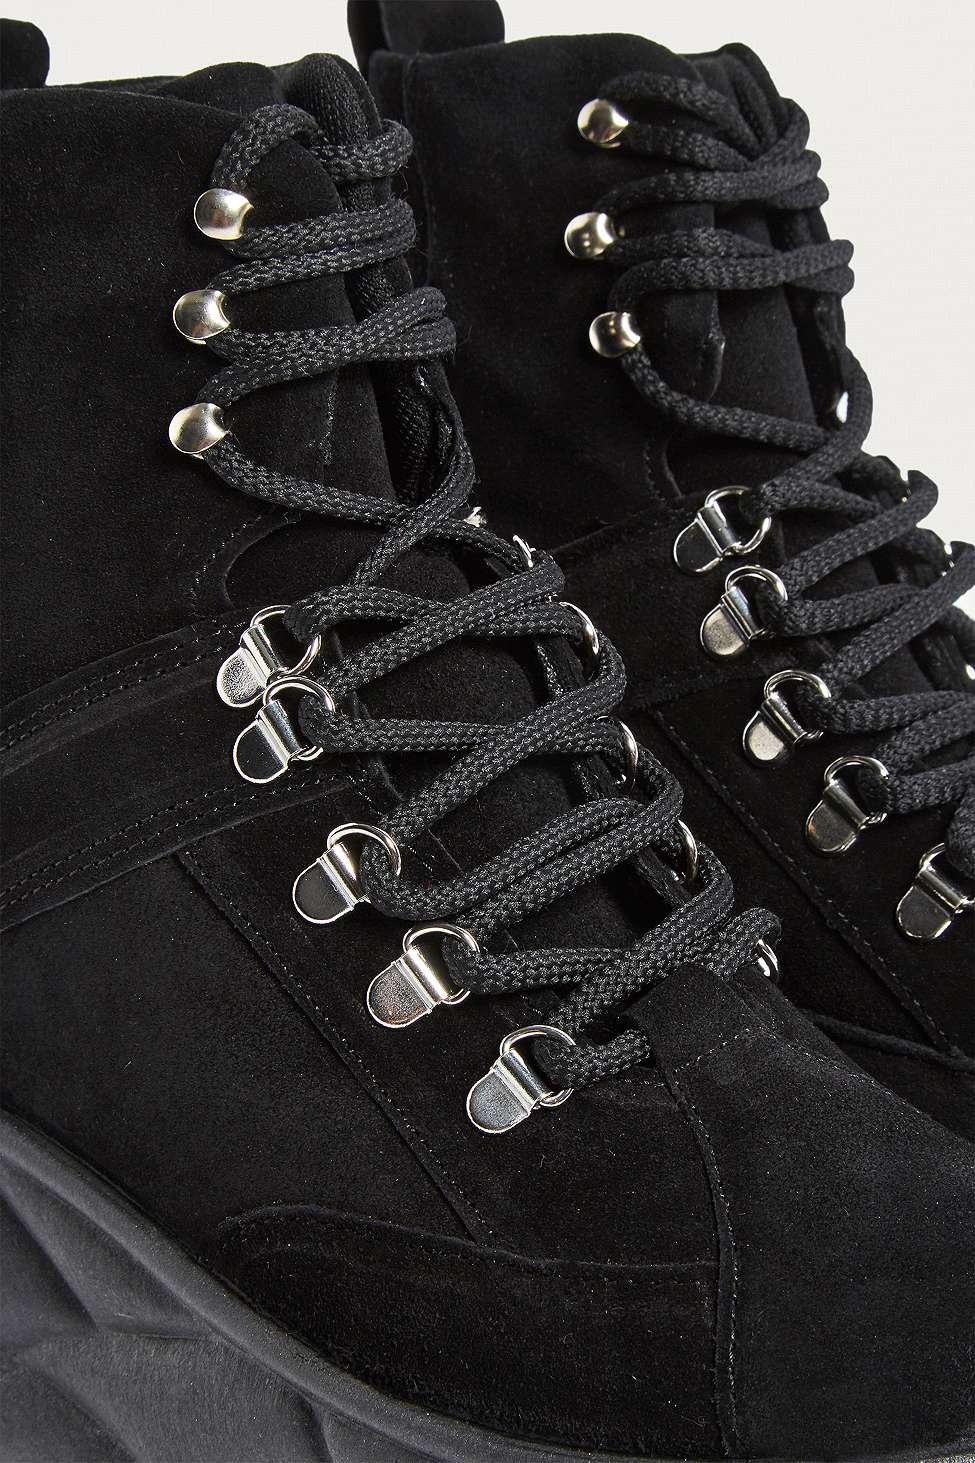 f6aa0a0a6317ab Urban Outfitters Uo Tia Chunky Suede Platform Boots - Womens Uk 3 in ...